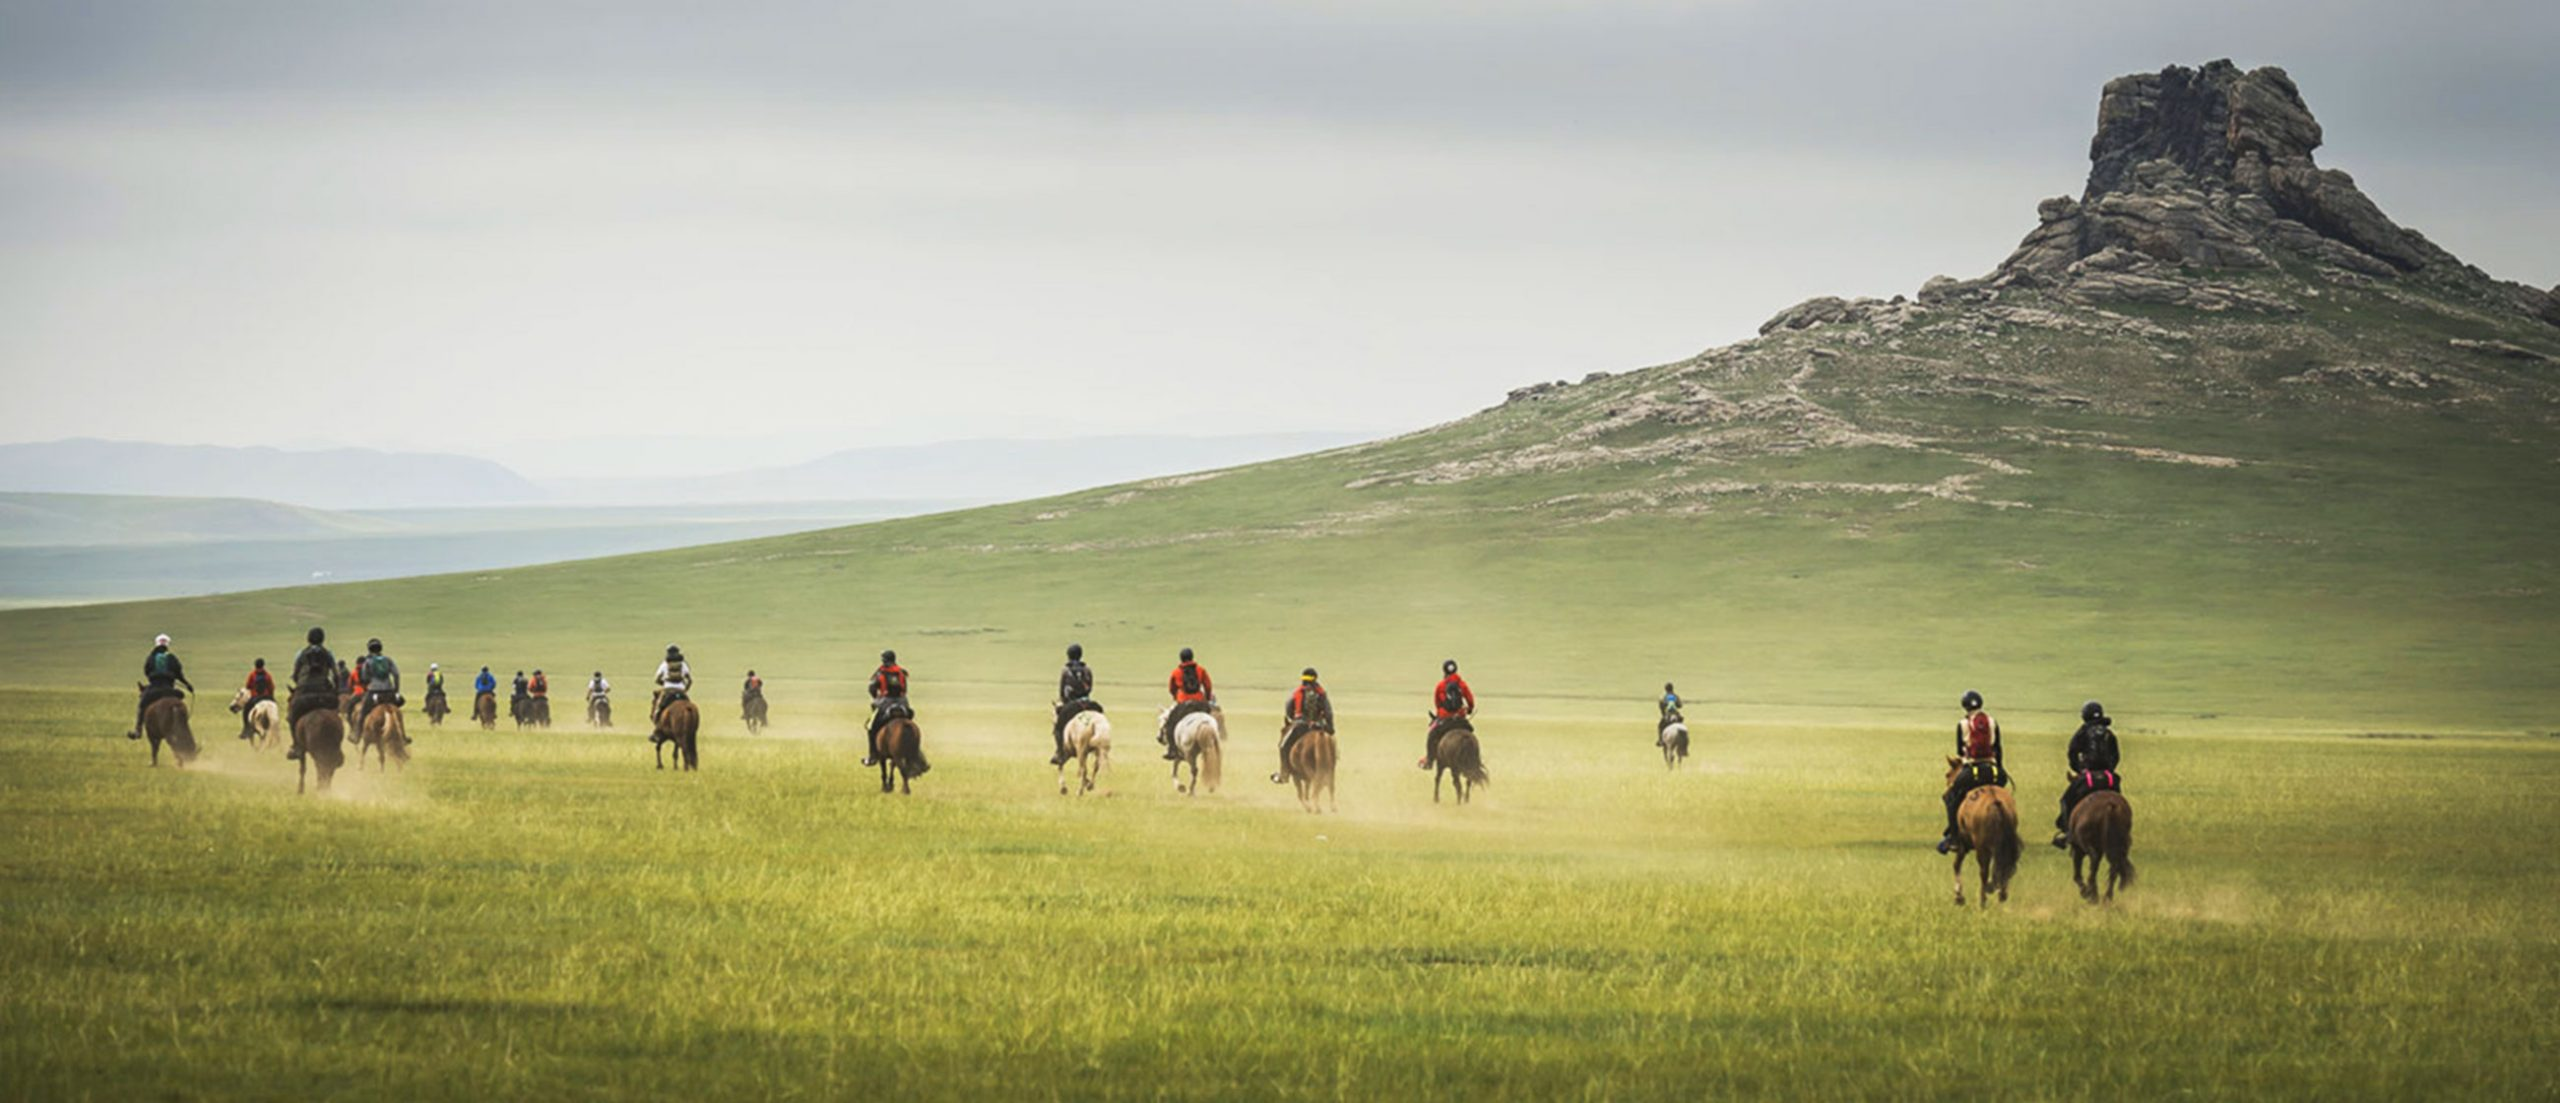 Mongol Derby - Galloping the steppe